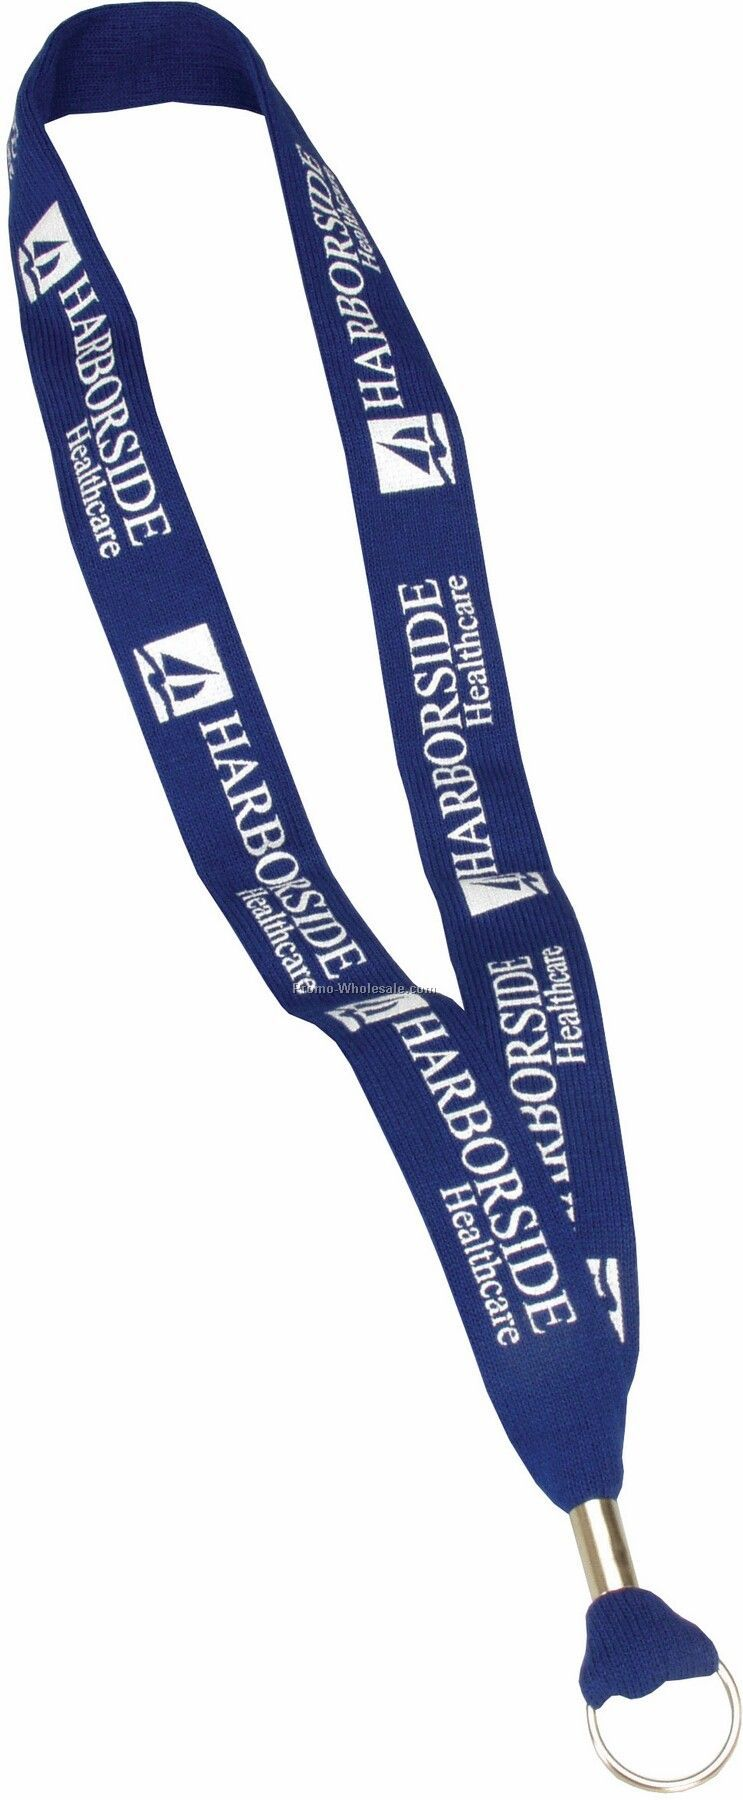 "1""x34"" 2 Ply Cotton Lanyards"